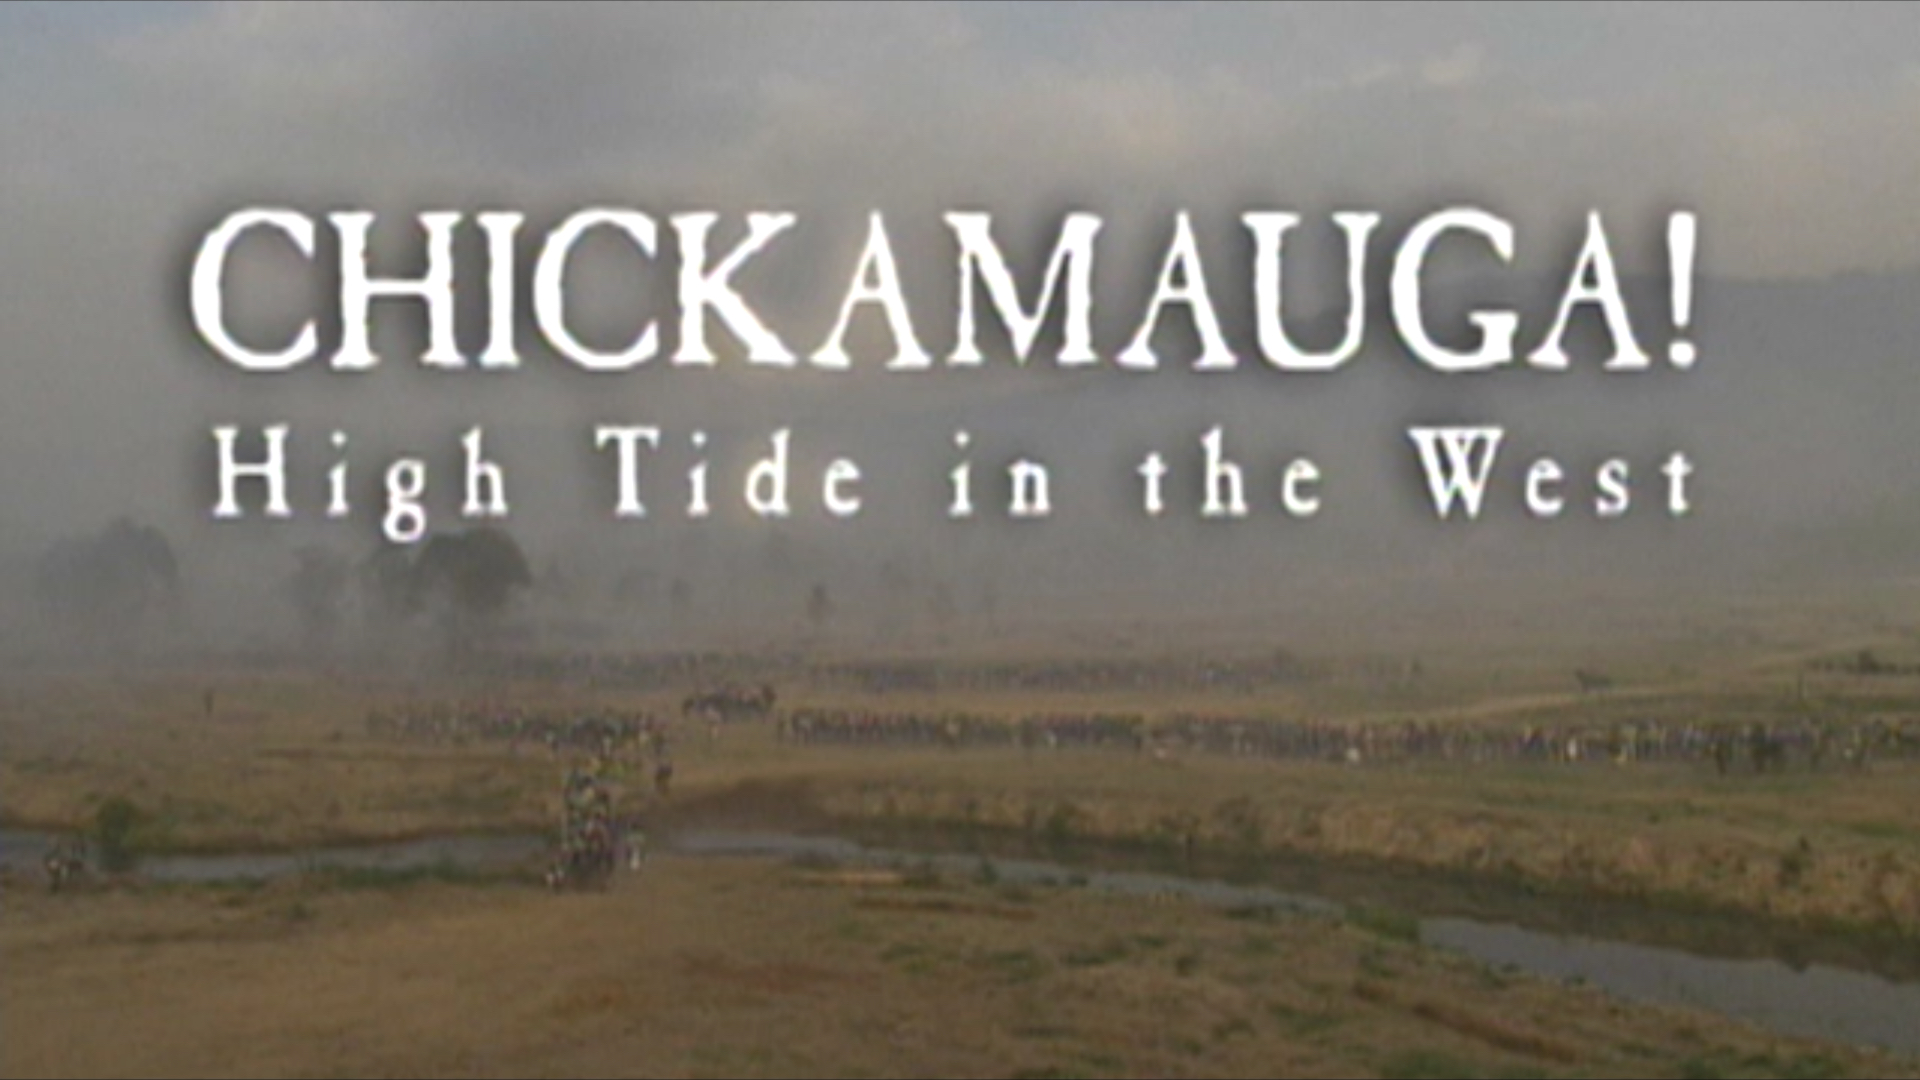 Chickamauga! High Tide in the West